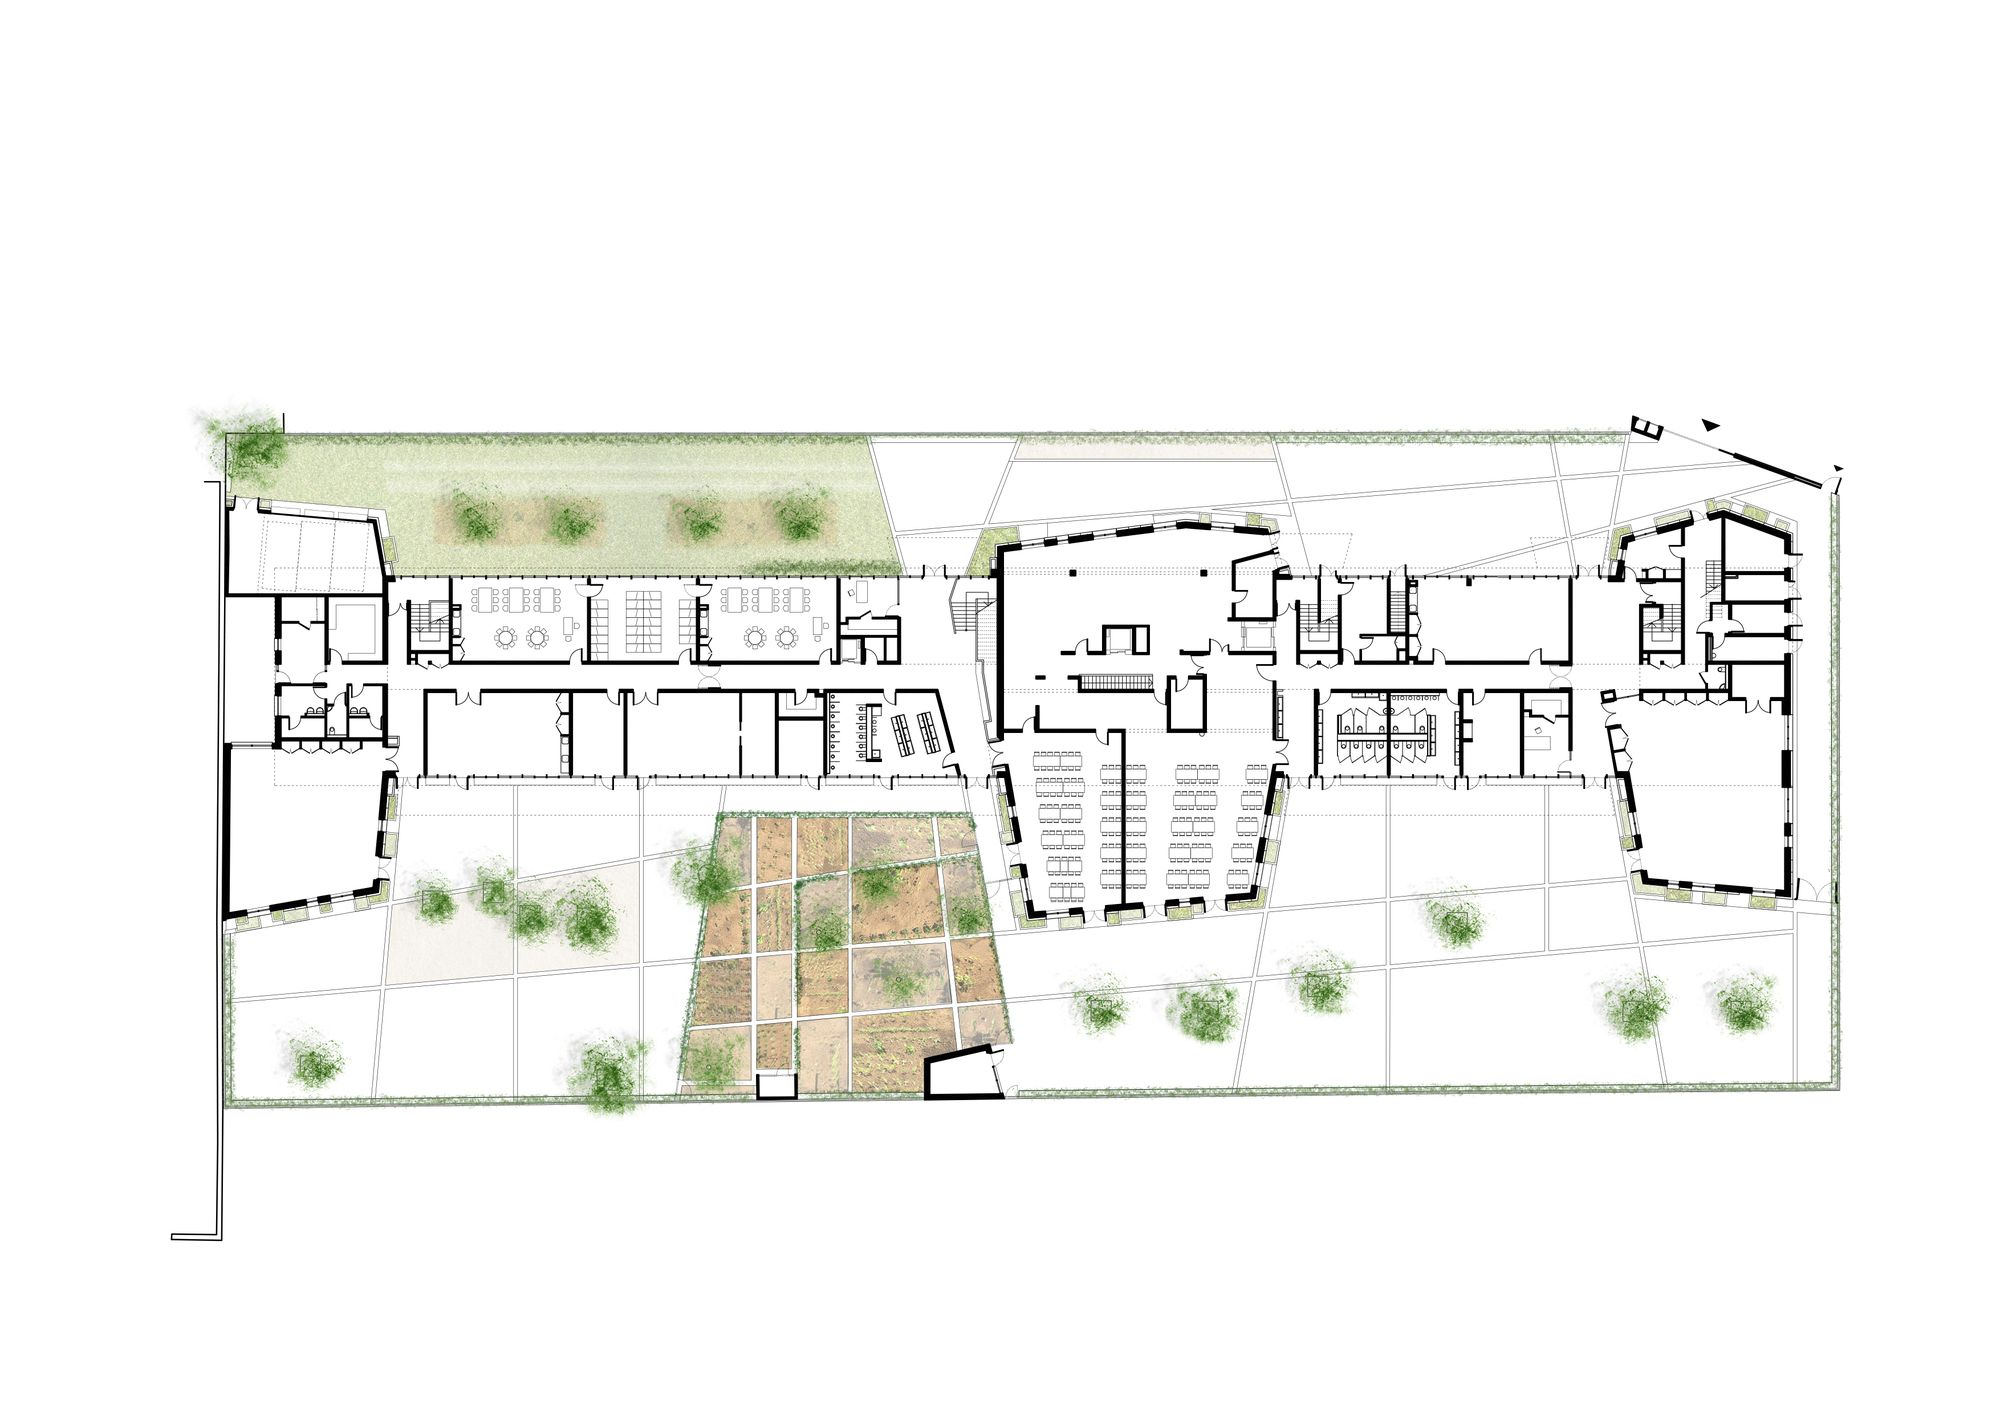 Gallery Of Eco Nursery And Primary School Jean Francois Schmit 8 Primary School Eco Friendly Nursery School Floor Plan